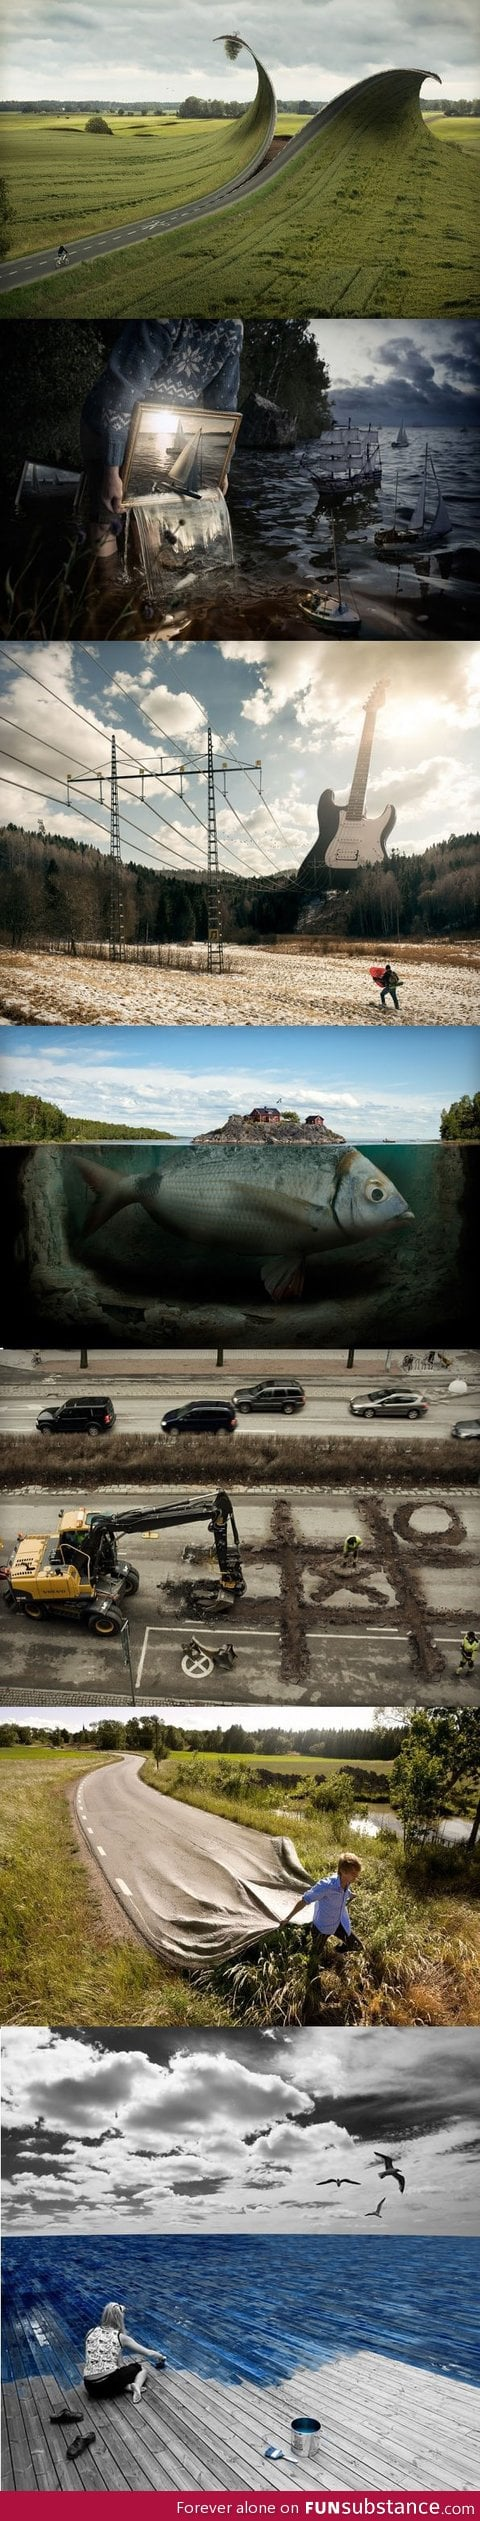 Works by Photoshop Genius Erik Johansson